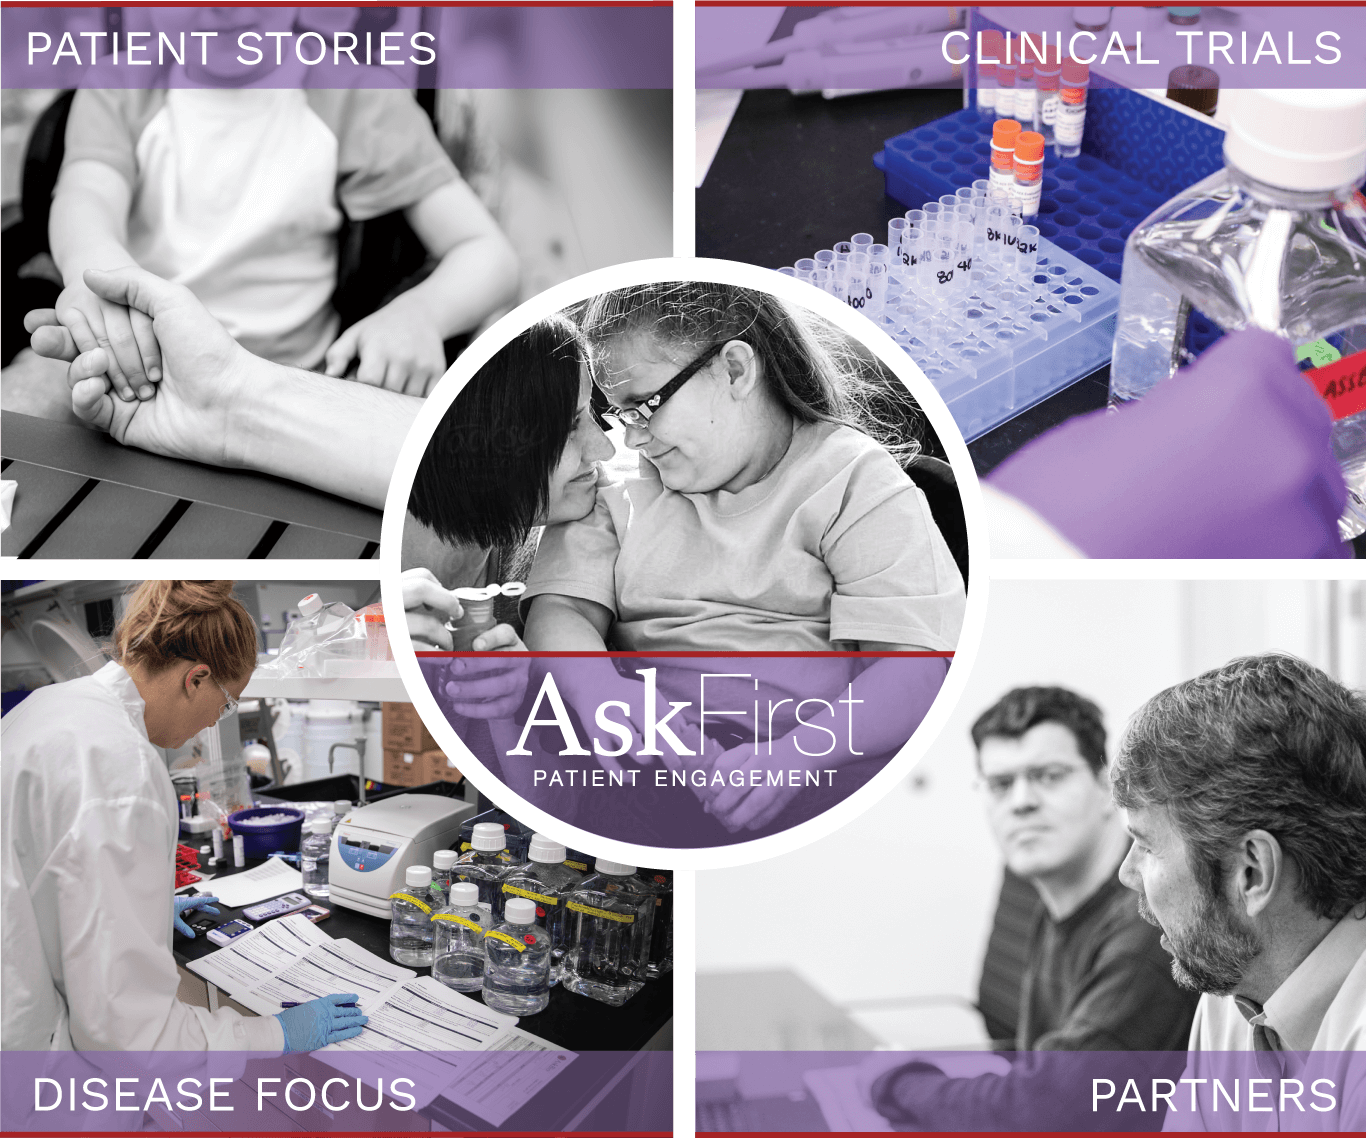 AskFirst™ Patient Engagement Program works with patients and advocacy partners to ensure patients have access to the most up to date information on clinical trials, partners, diseases that AskBio focuses on and real patient stories.